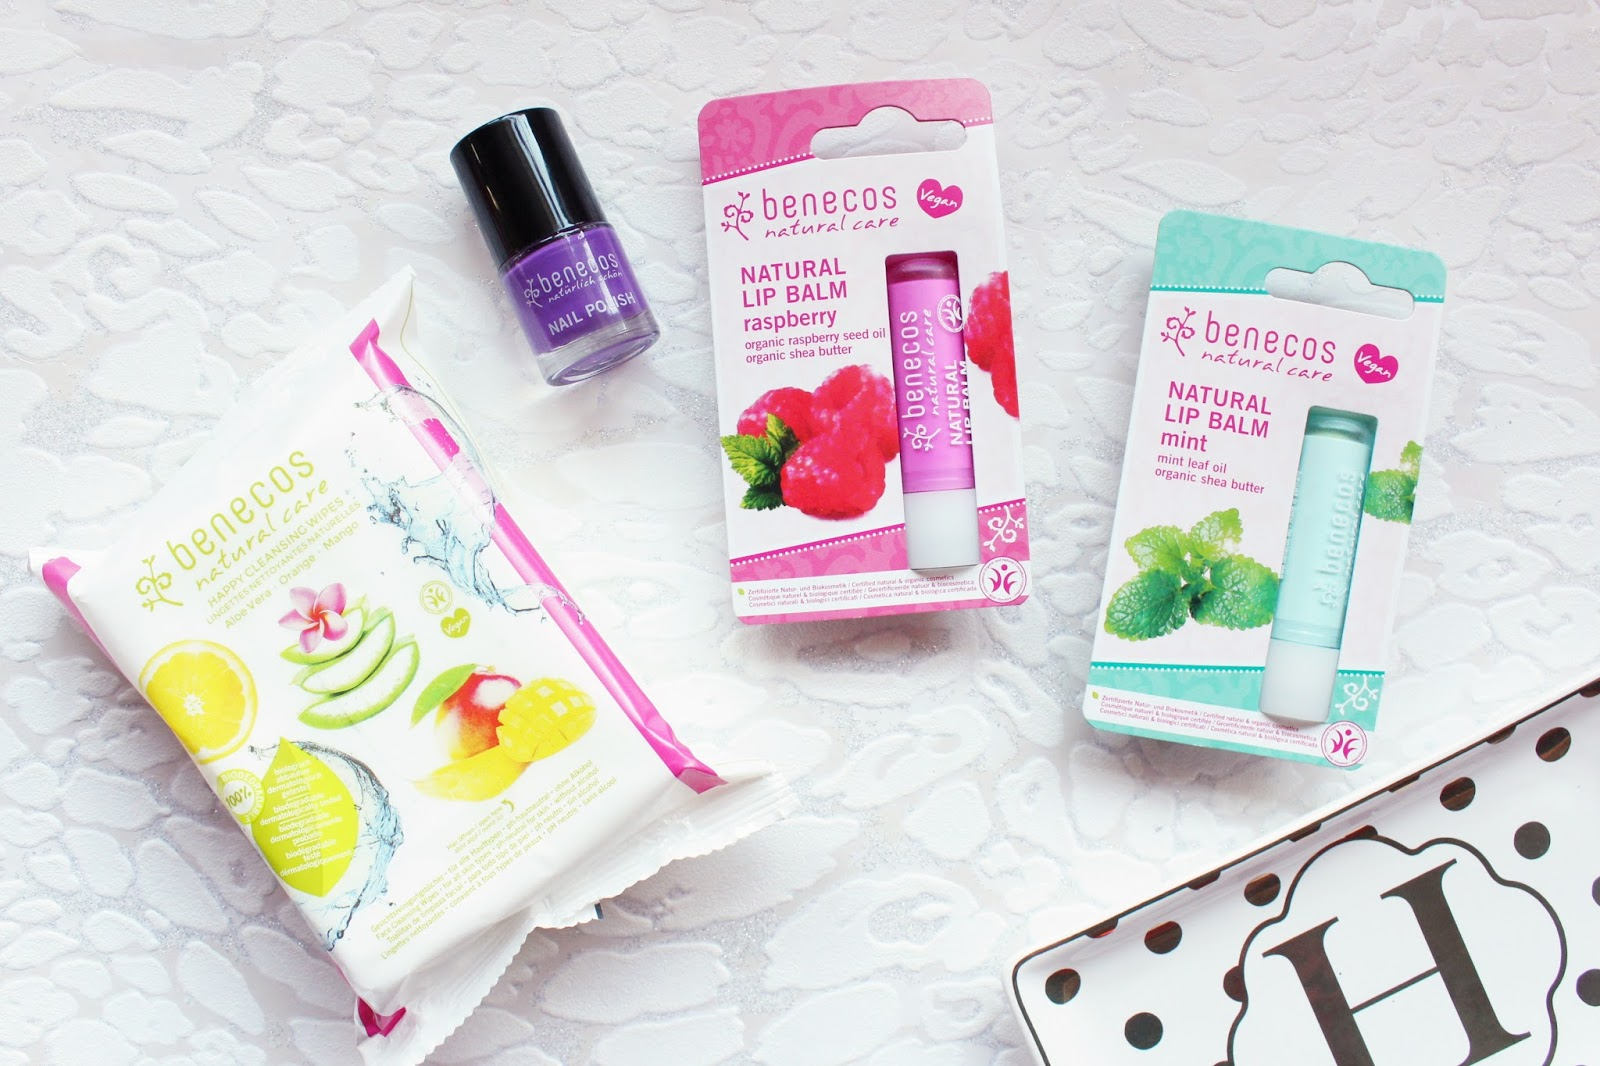 NEW Products from Benecos